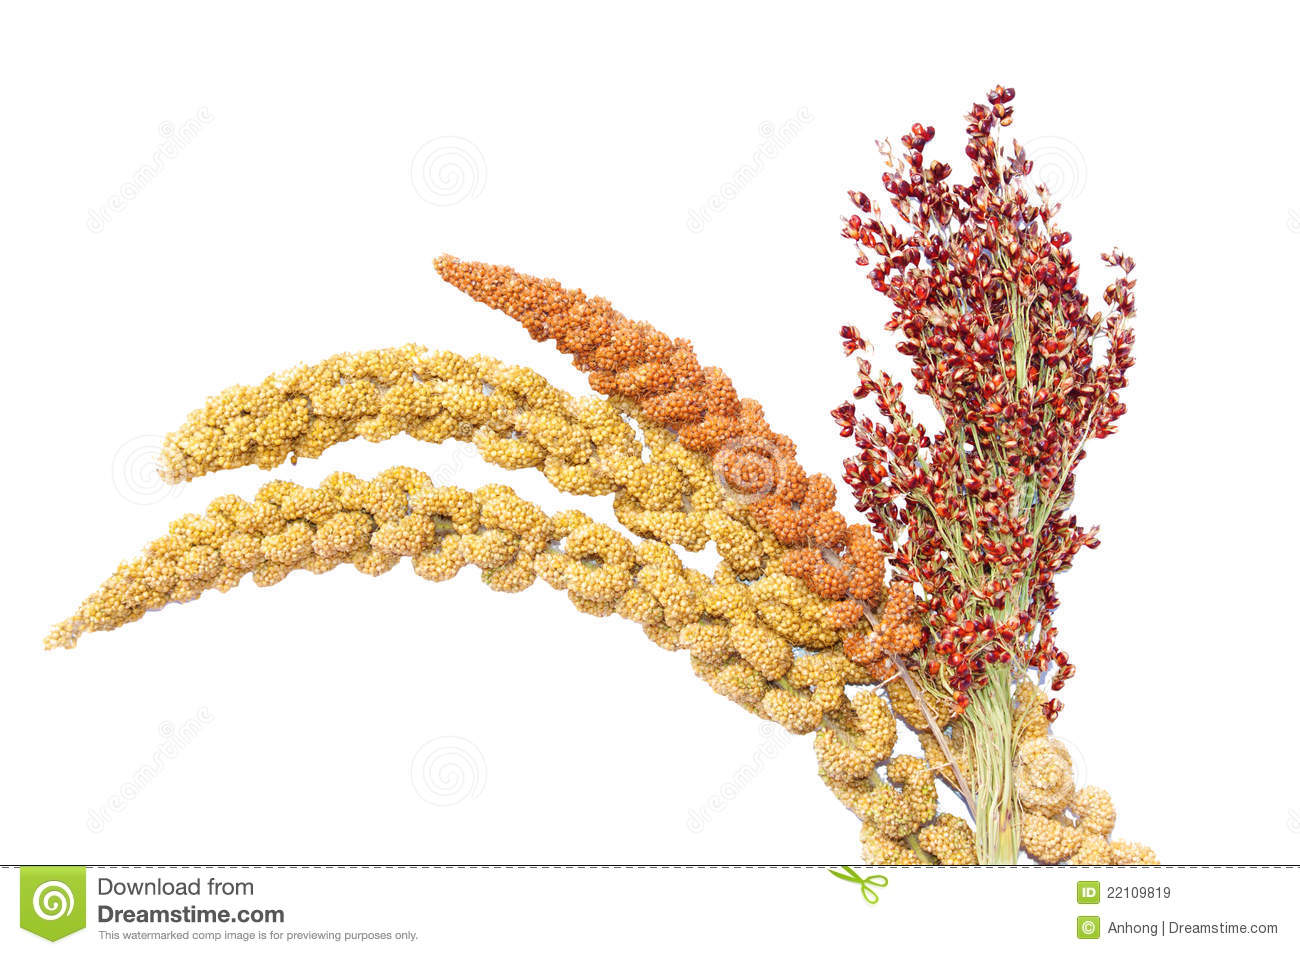 millet and sorghum royalty free stock images image 22109819 french fries clipart french fries clip art transparent